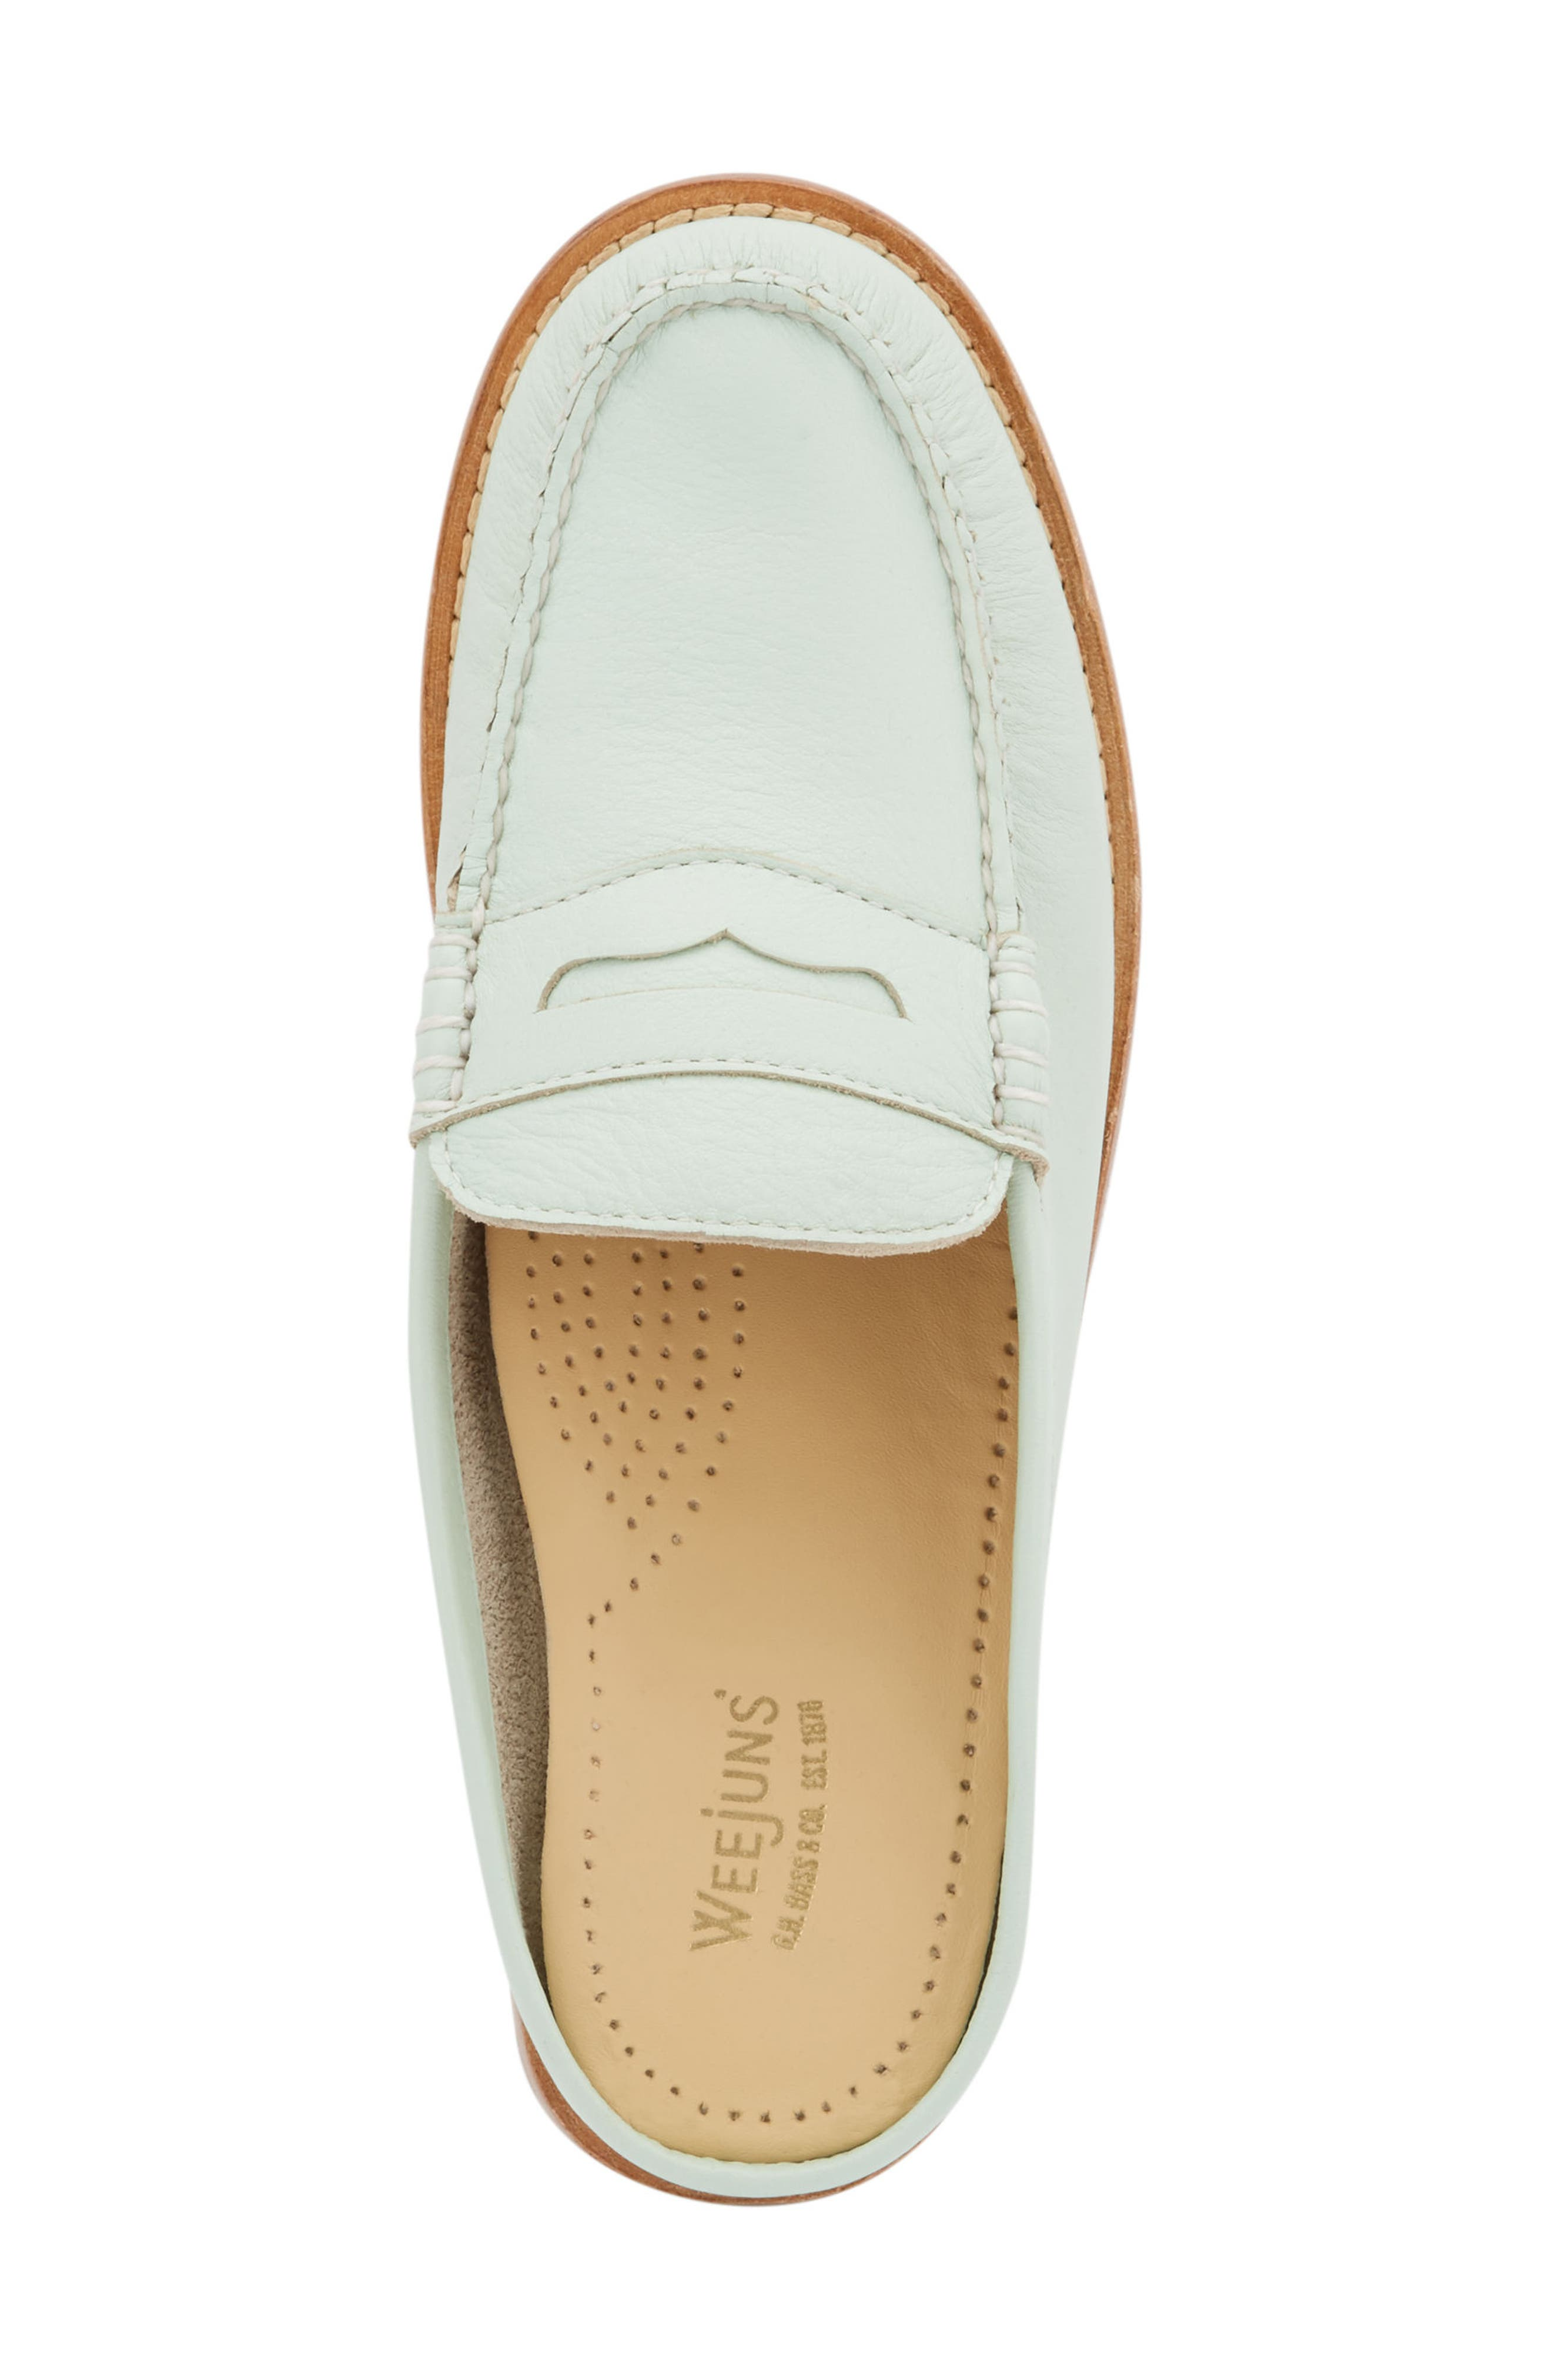 Wynn Loafer Mule,                             Alternate thumbnail 112, color,